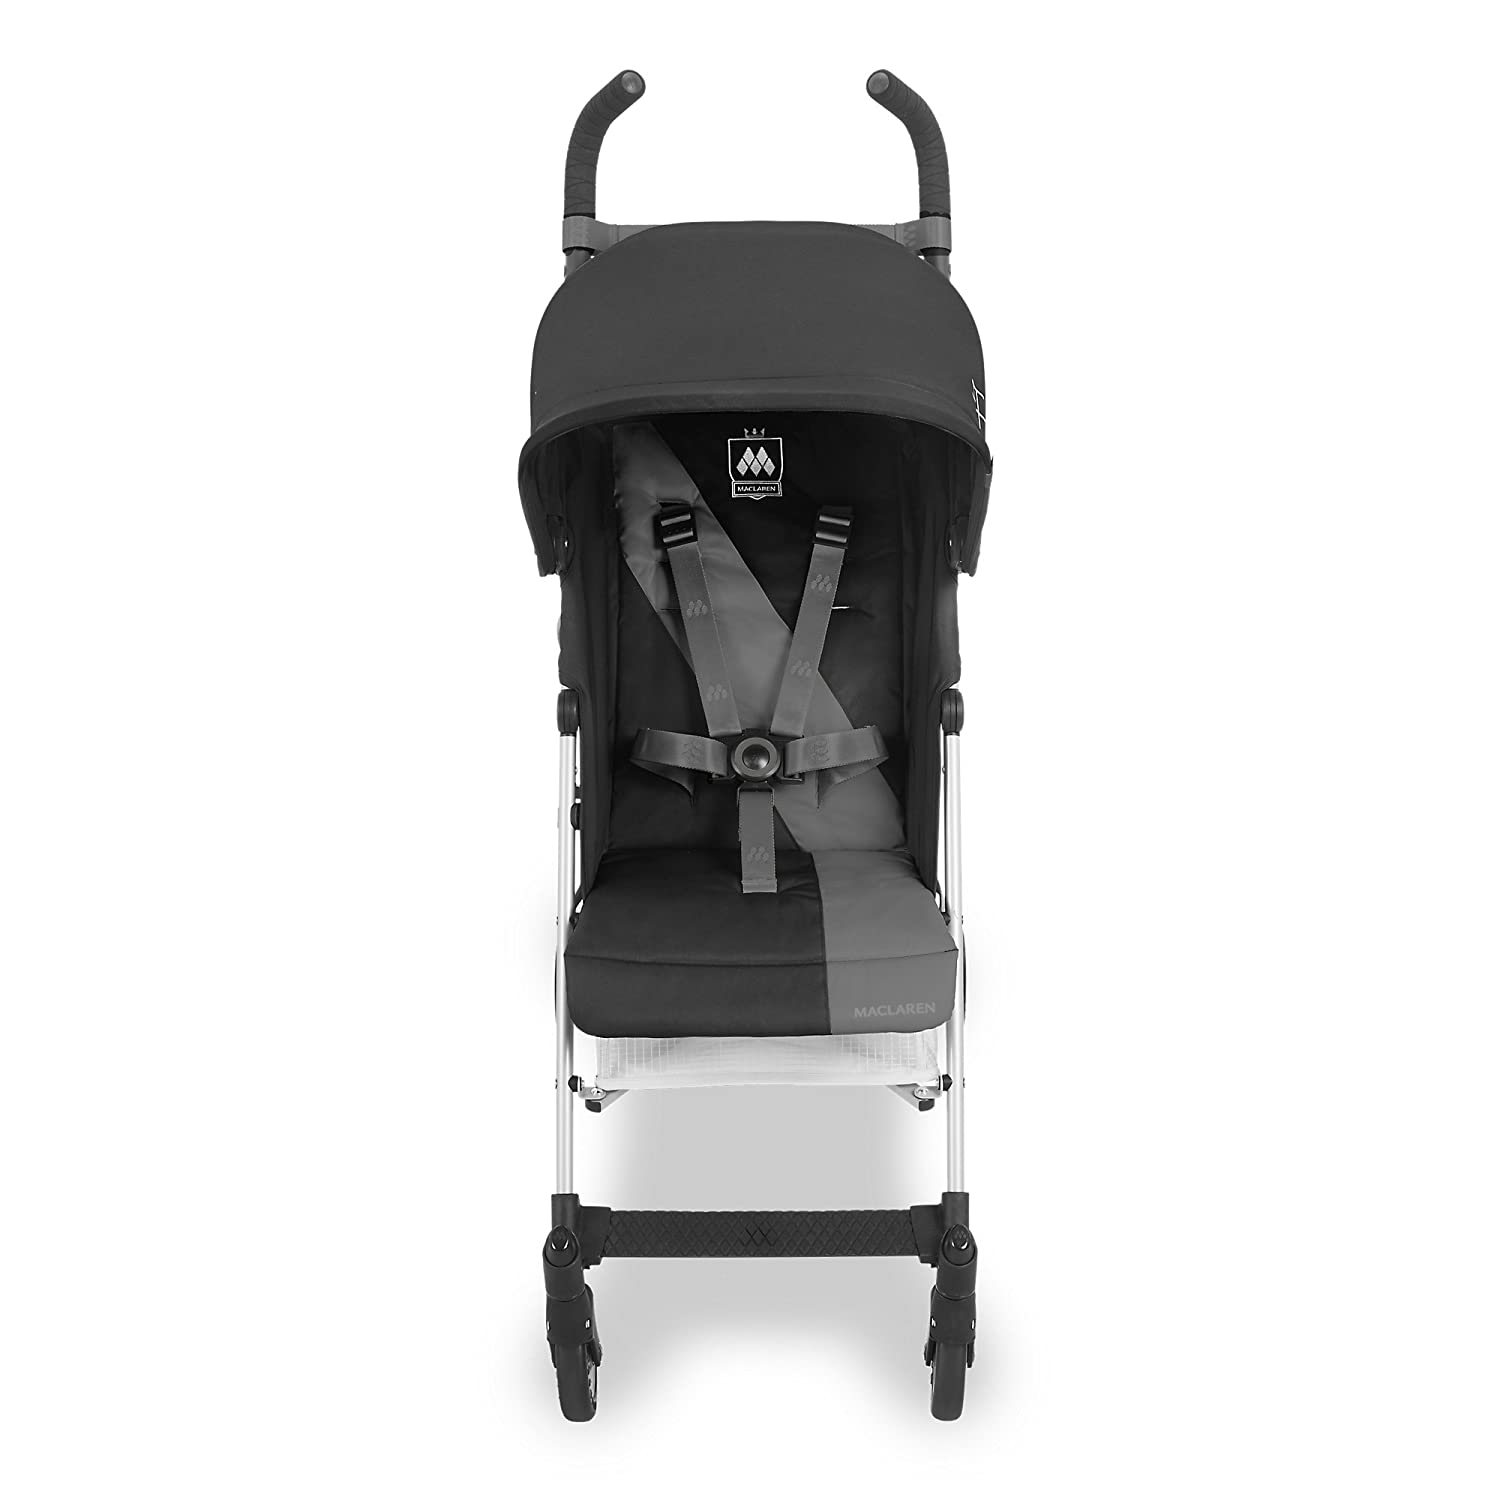 71h1v7NIMgL. SL1500 15 Best Umbrella Strollers for 2021 [Picked by Parents]